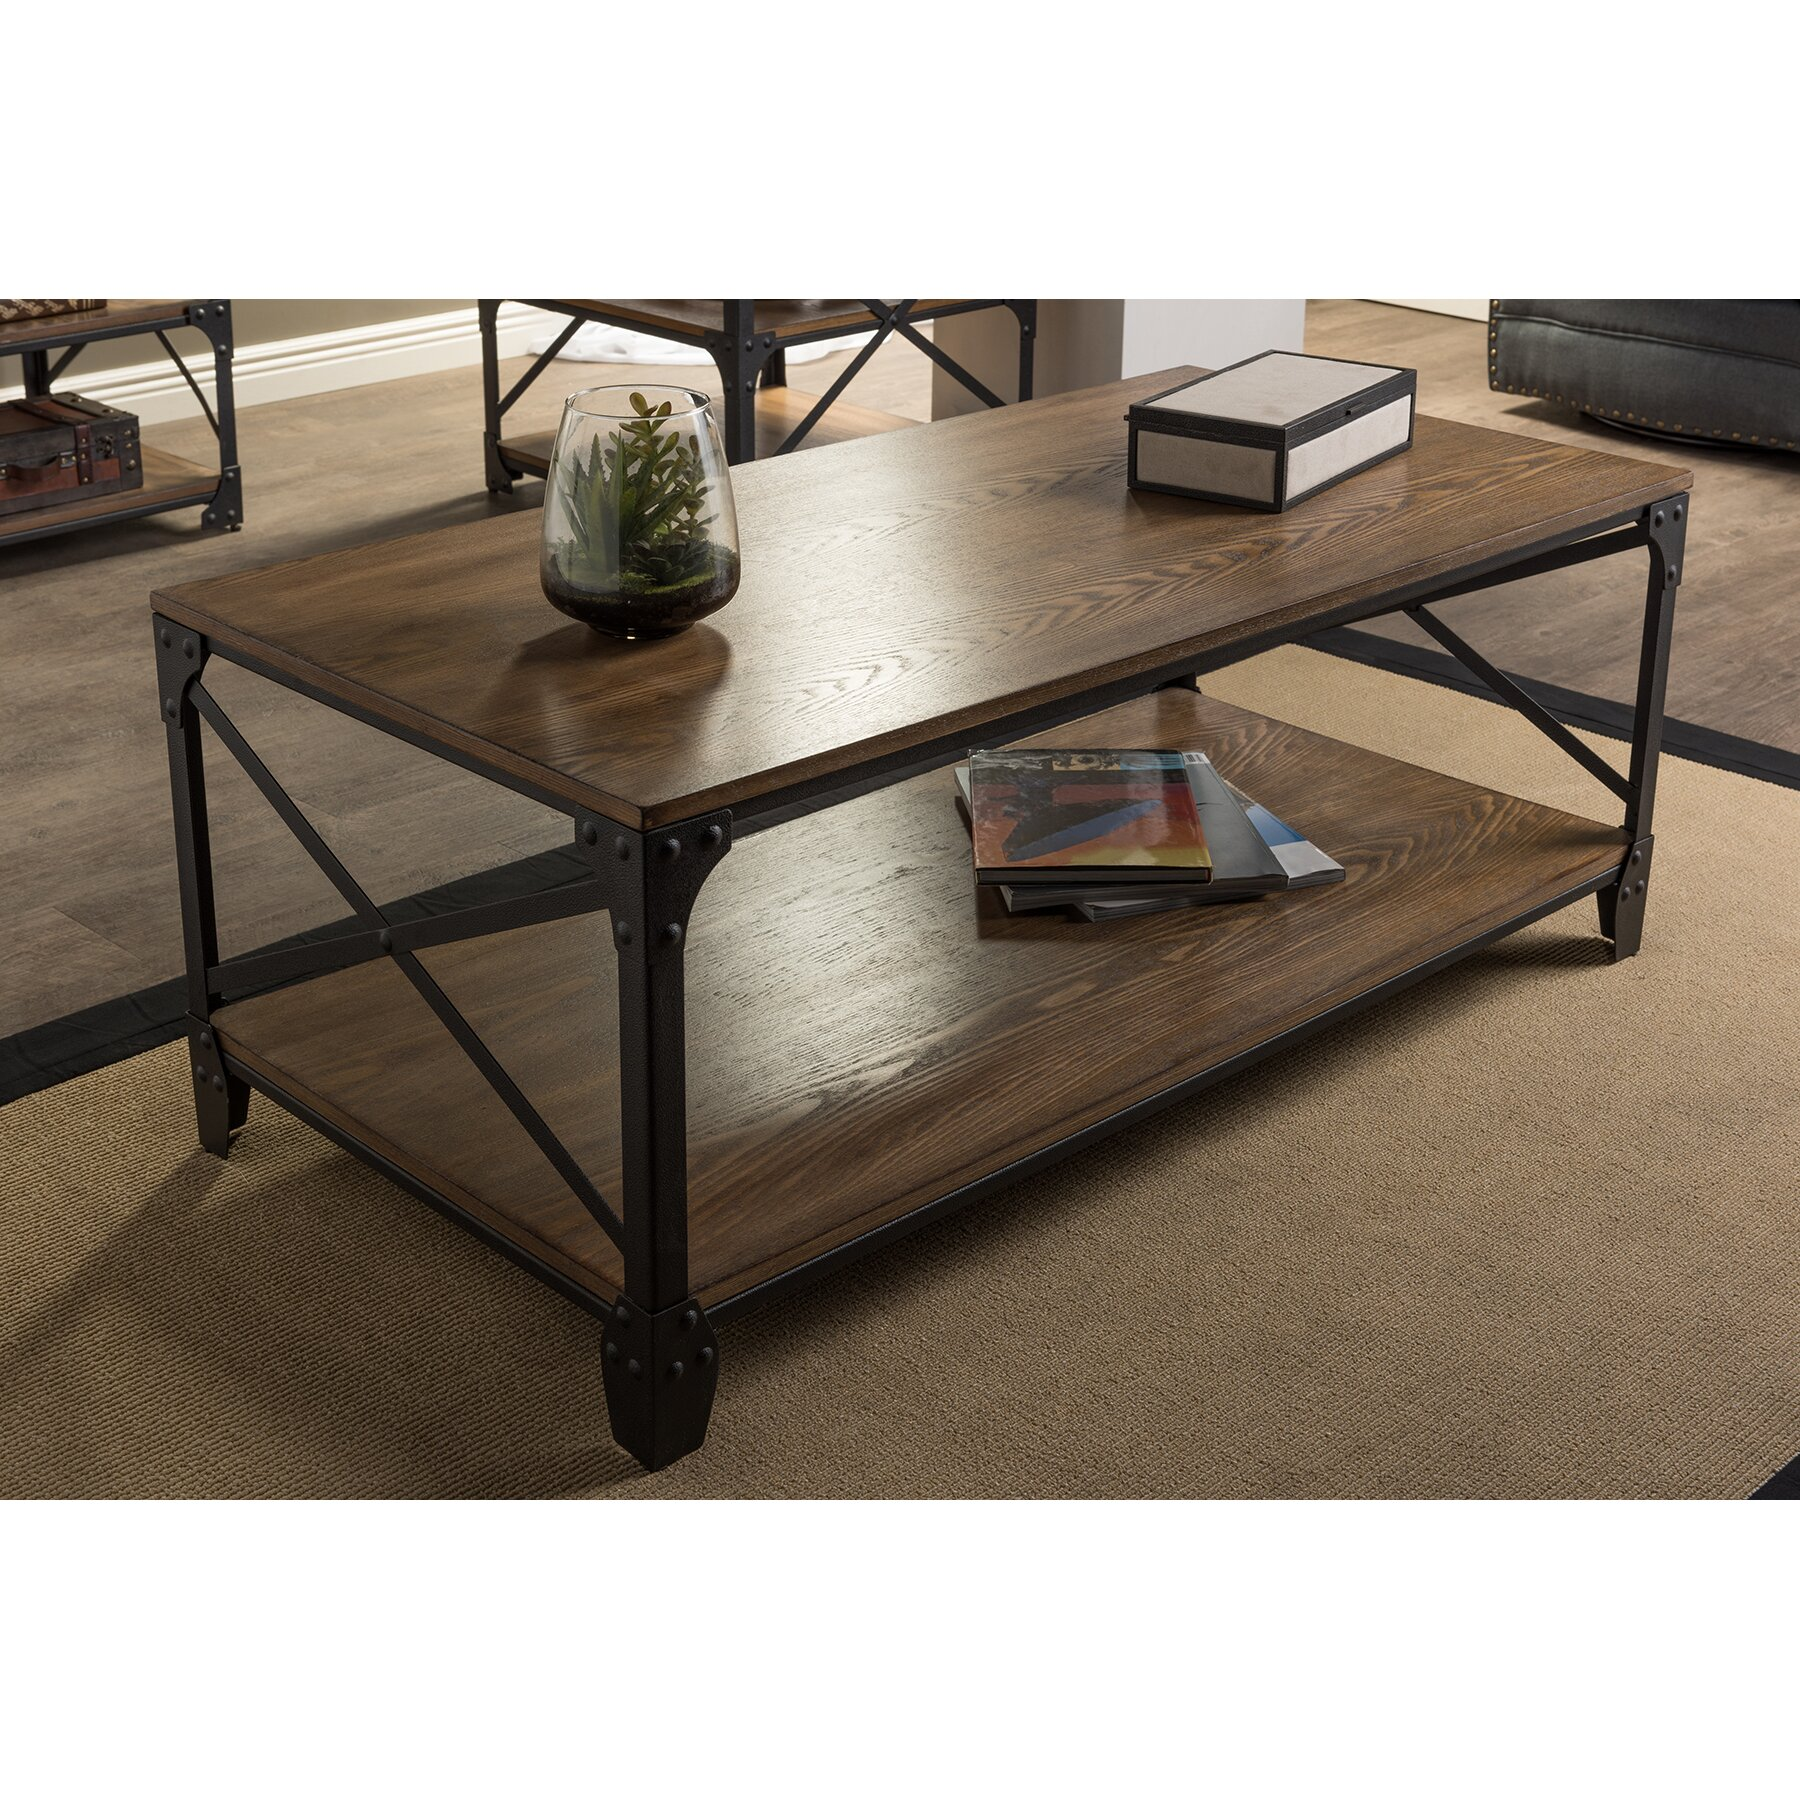 Vintage Casual Coffee Tables: Wholesale Interiors Baxton Studio Coffee Table & Reviews